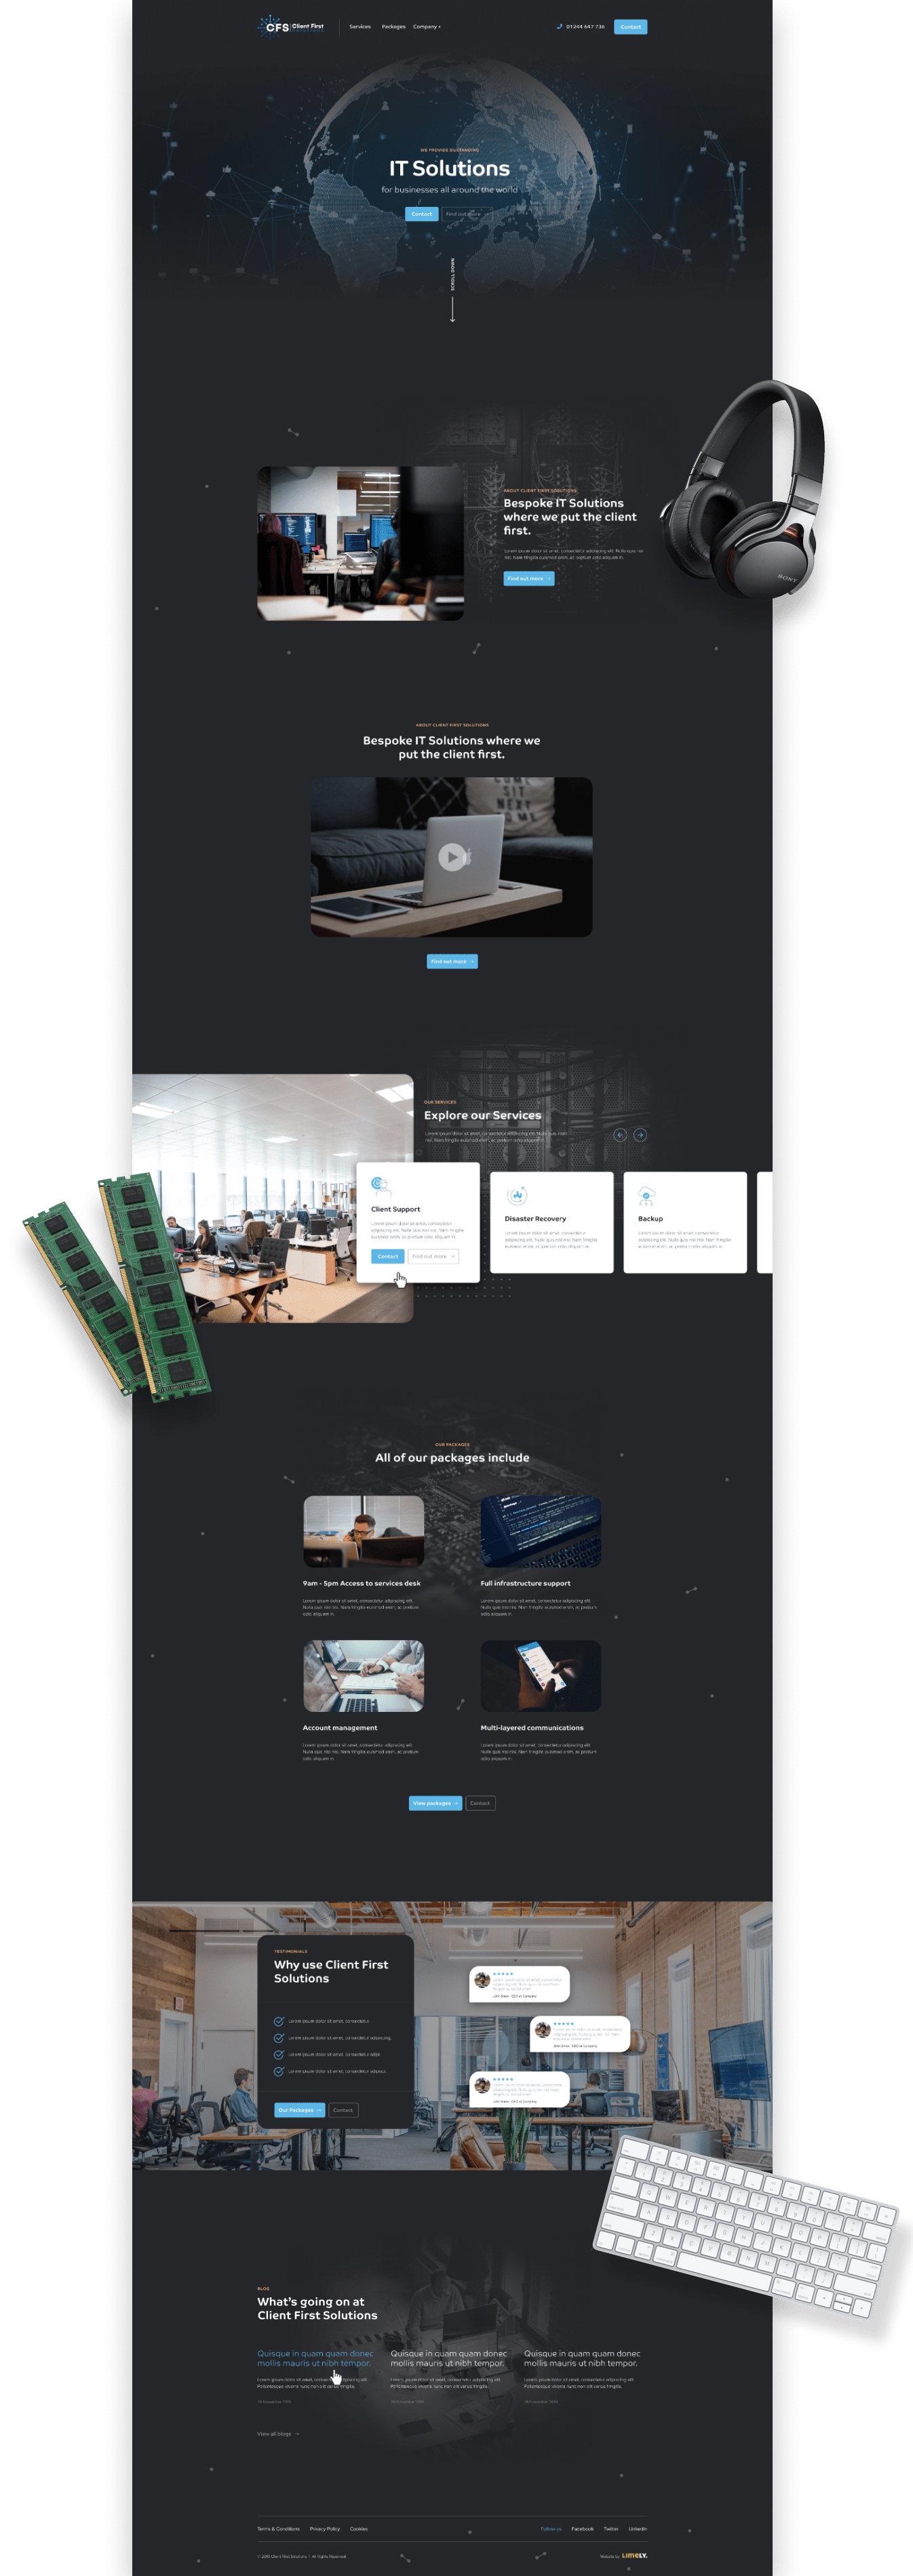 Client First Solutions website